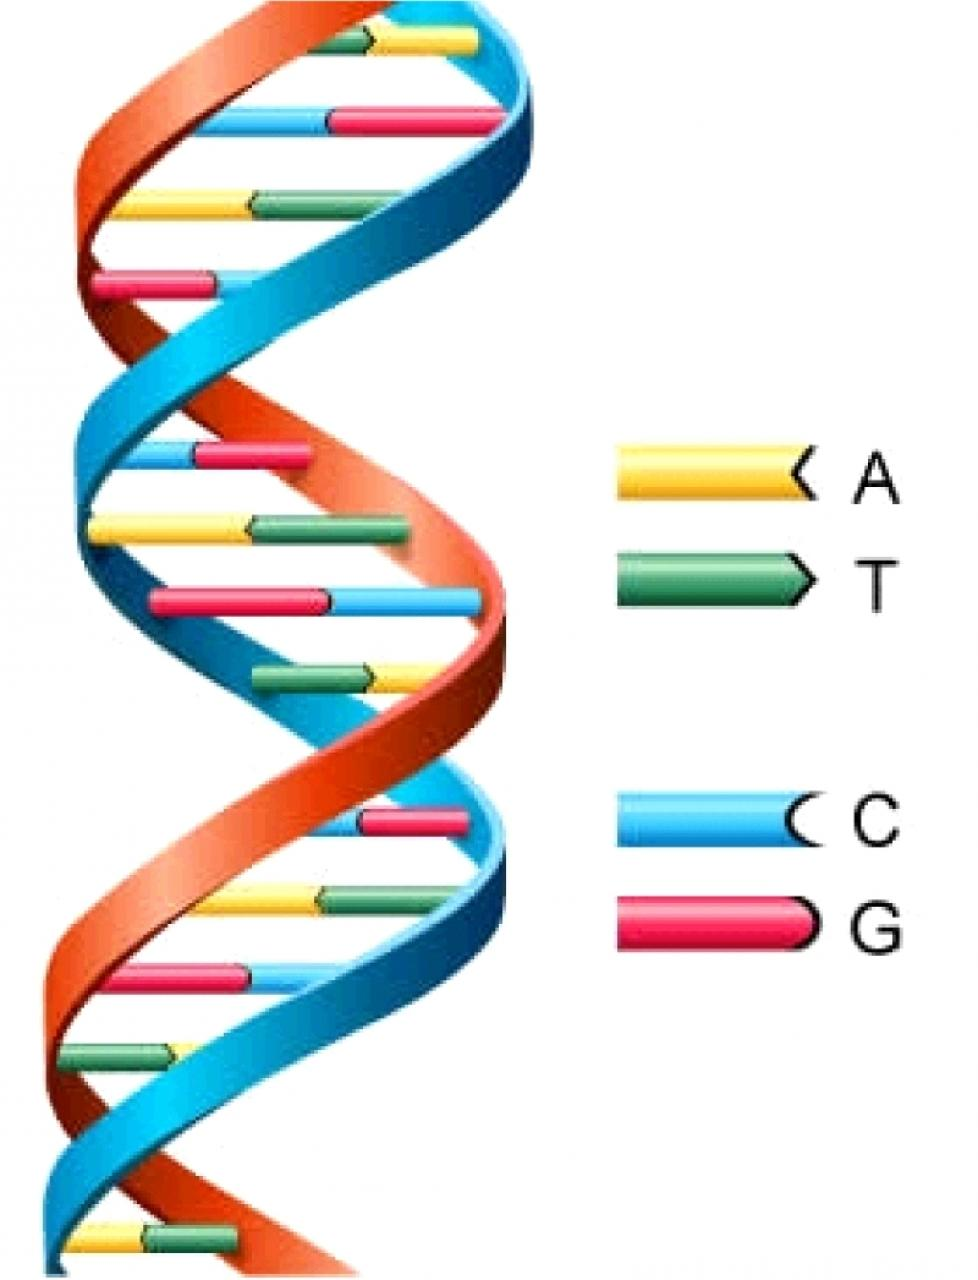 DNA: The Molecular Basics and Techniques for Analysis